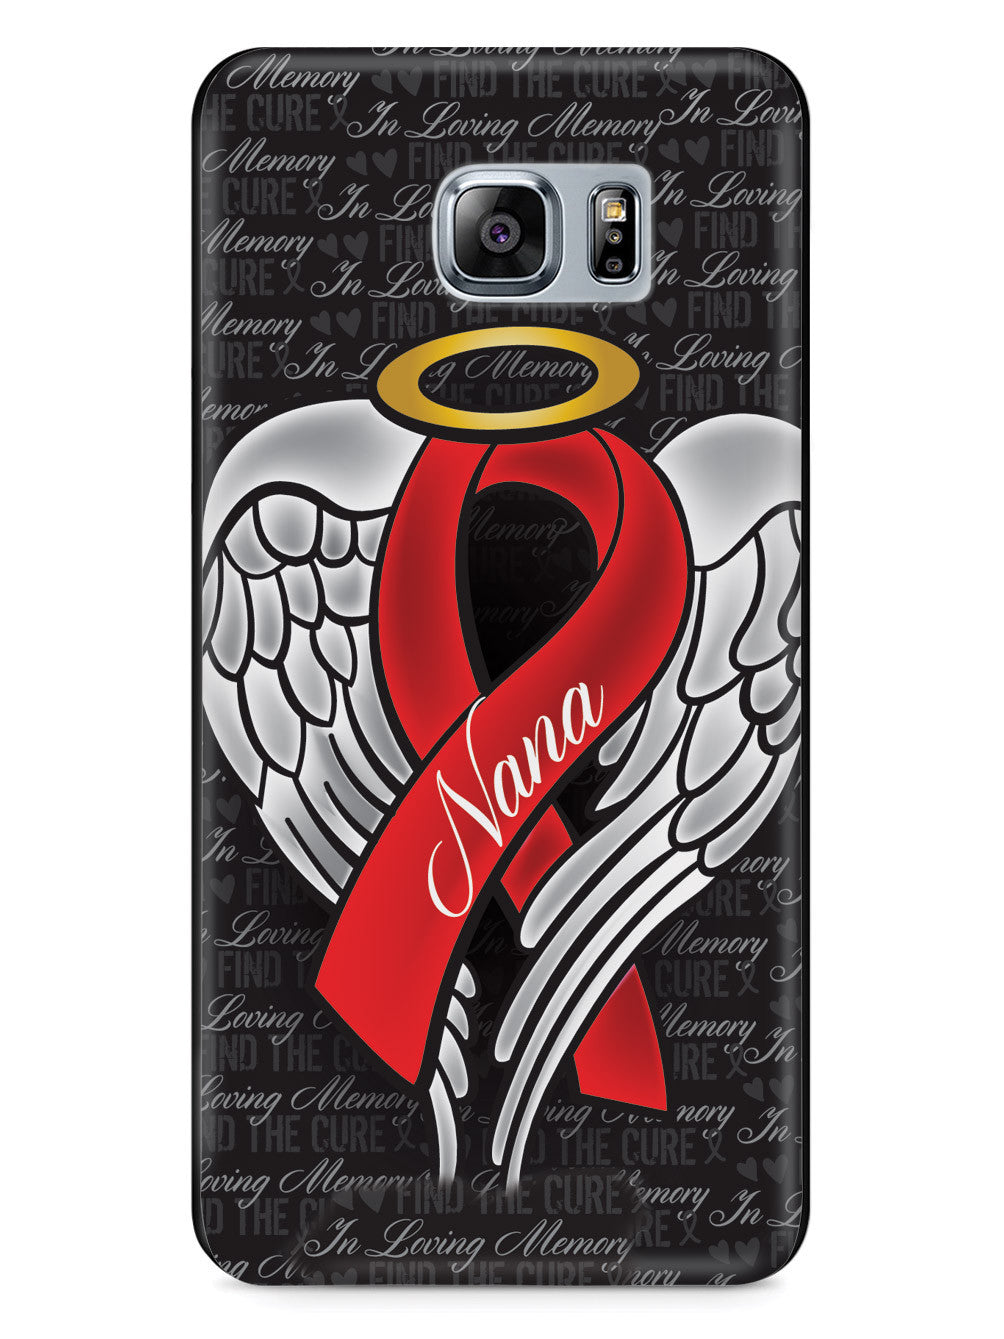 In Loving Memory of My Nana - Red Ribbon Case